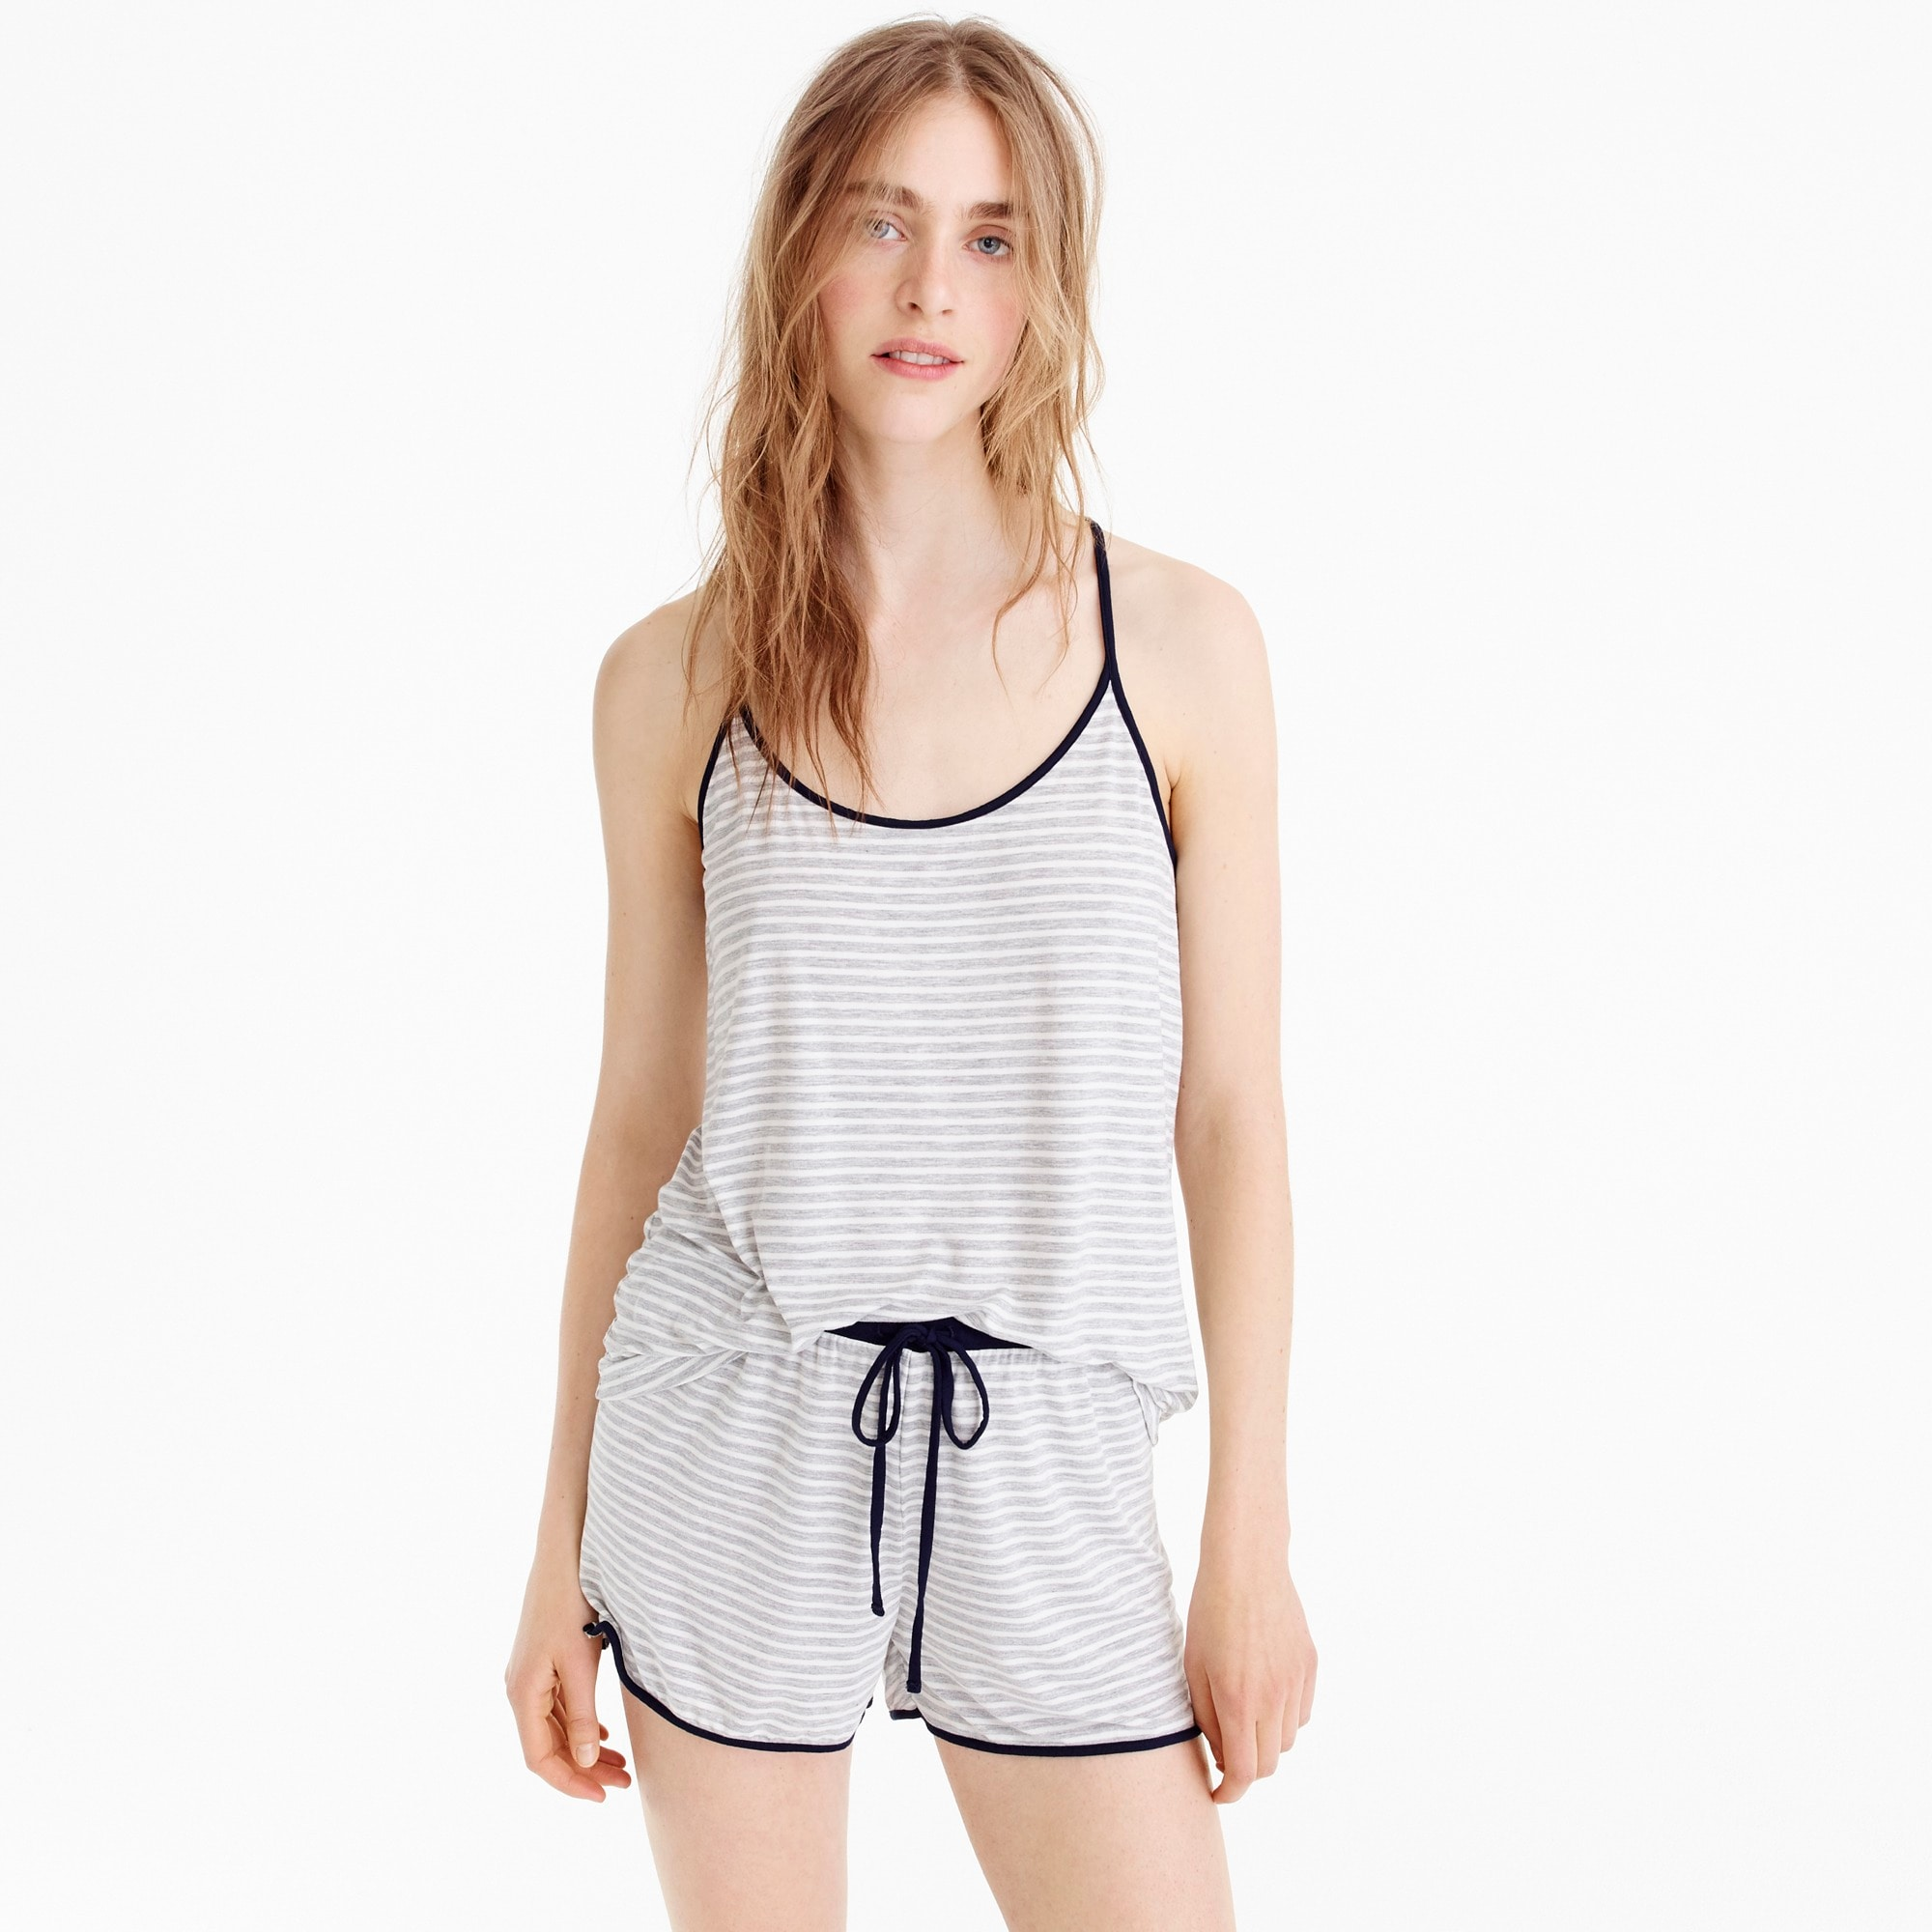 Cami short pajama set in stripe